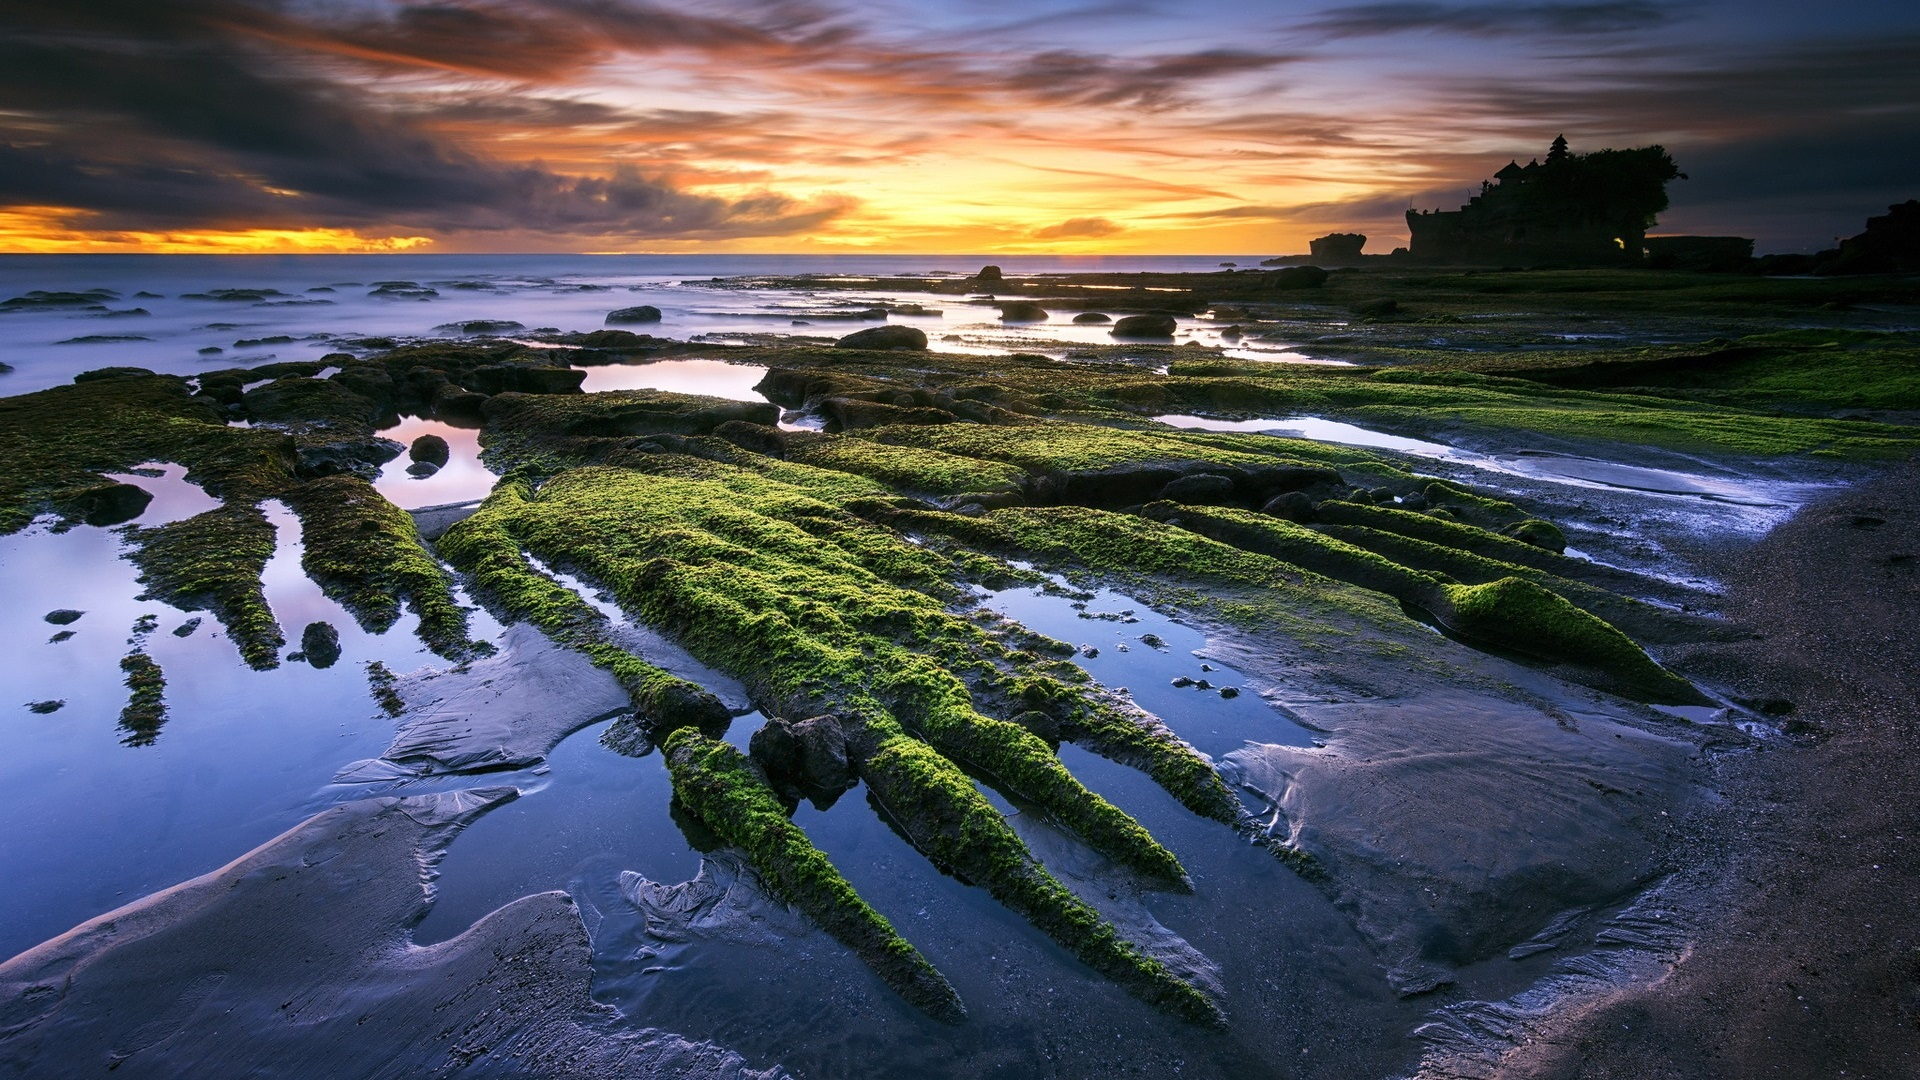 Download Wallpaper 1920x1080 Tanah Lot, Bali, Indonesia